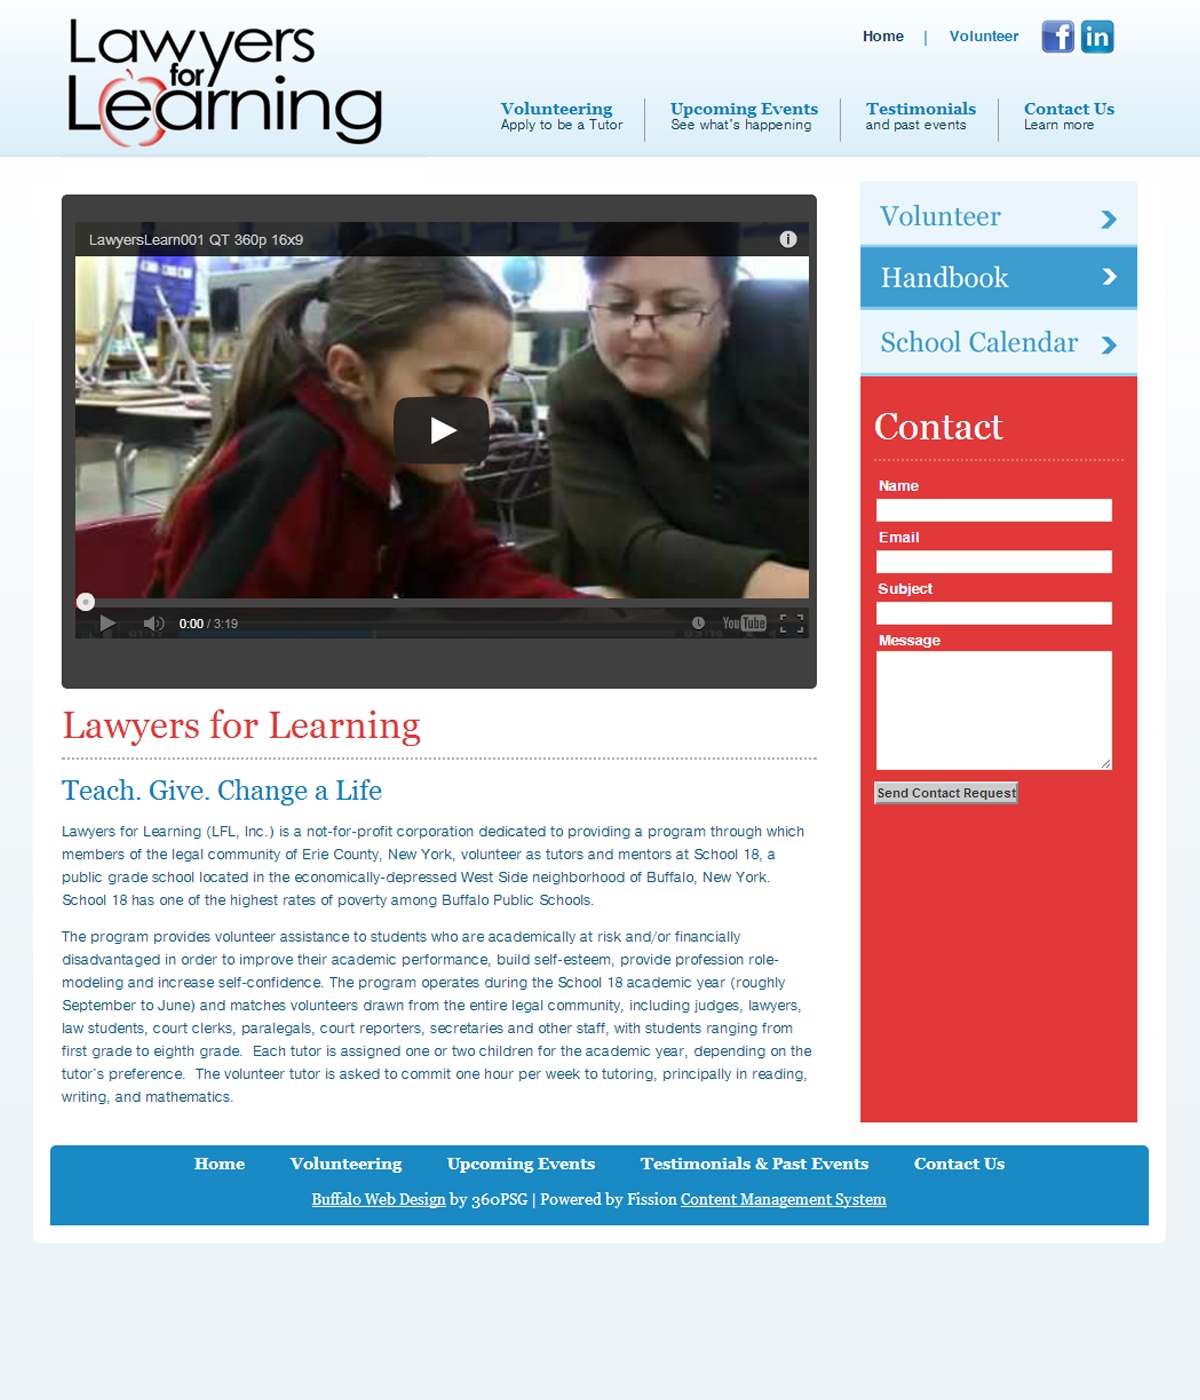 Lawyers for Learning